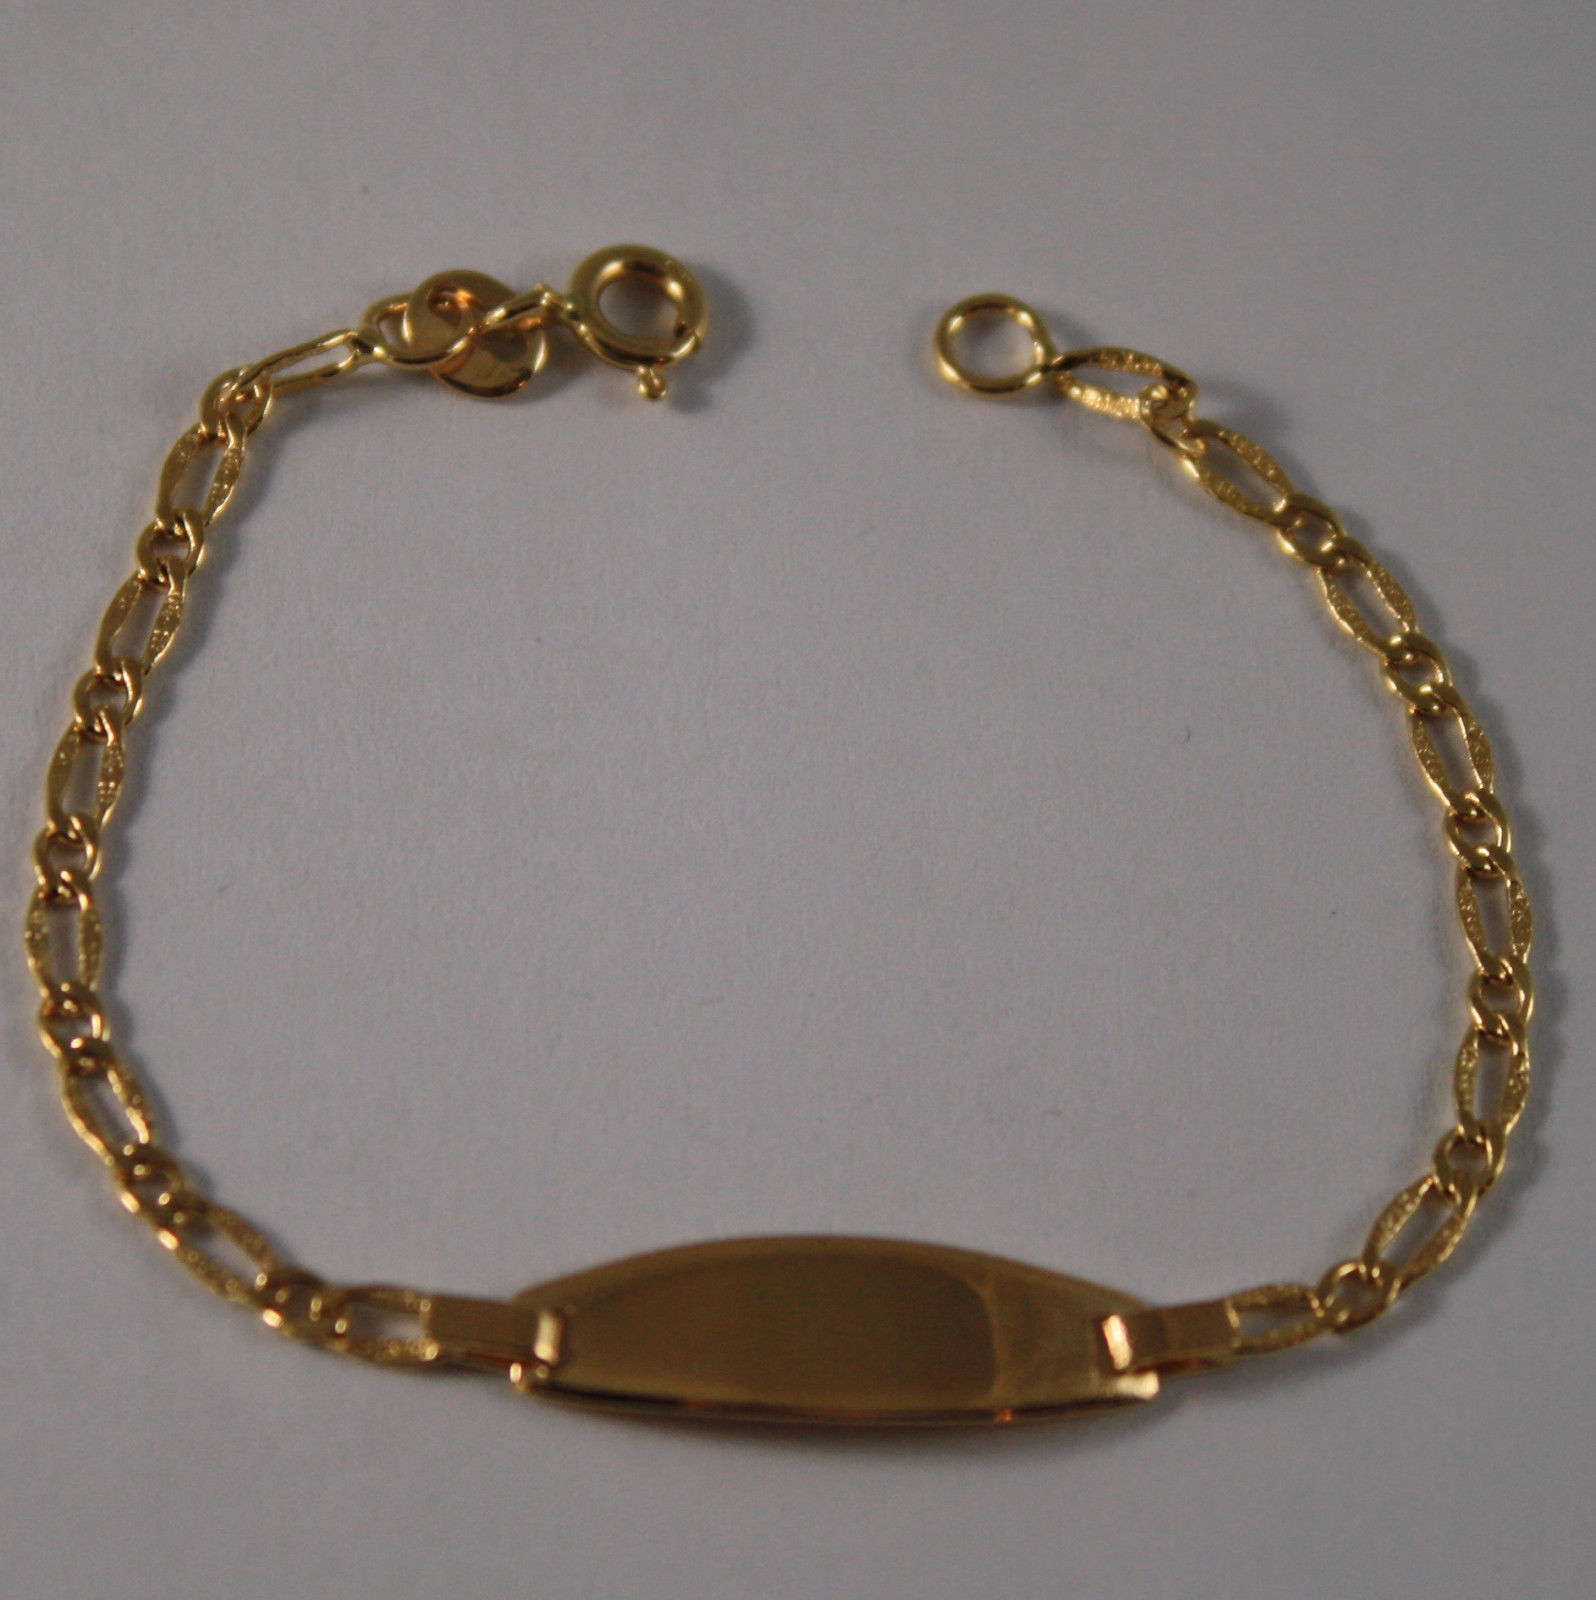 SOLID 18K YELLOW GOLD BRACELET, 5.51 INCHES ,SHINE, ENGRAVING PLATE, FOR CHILD.